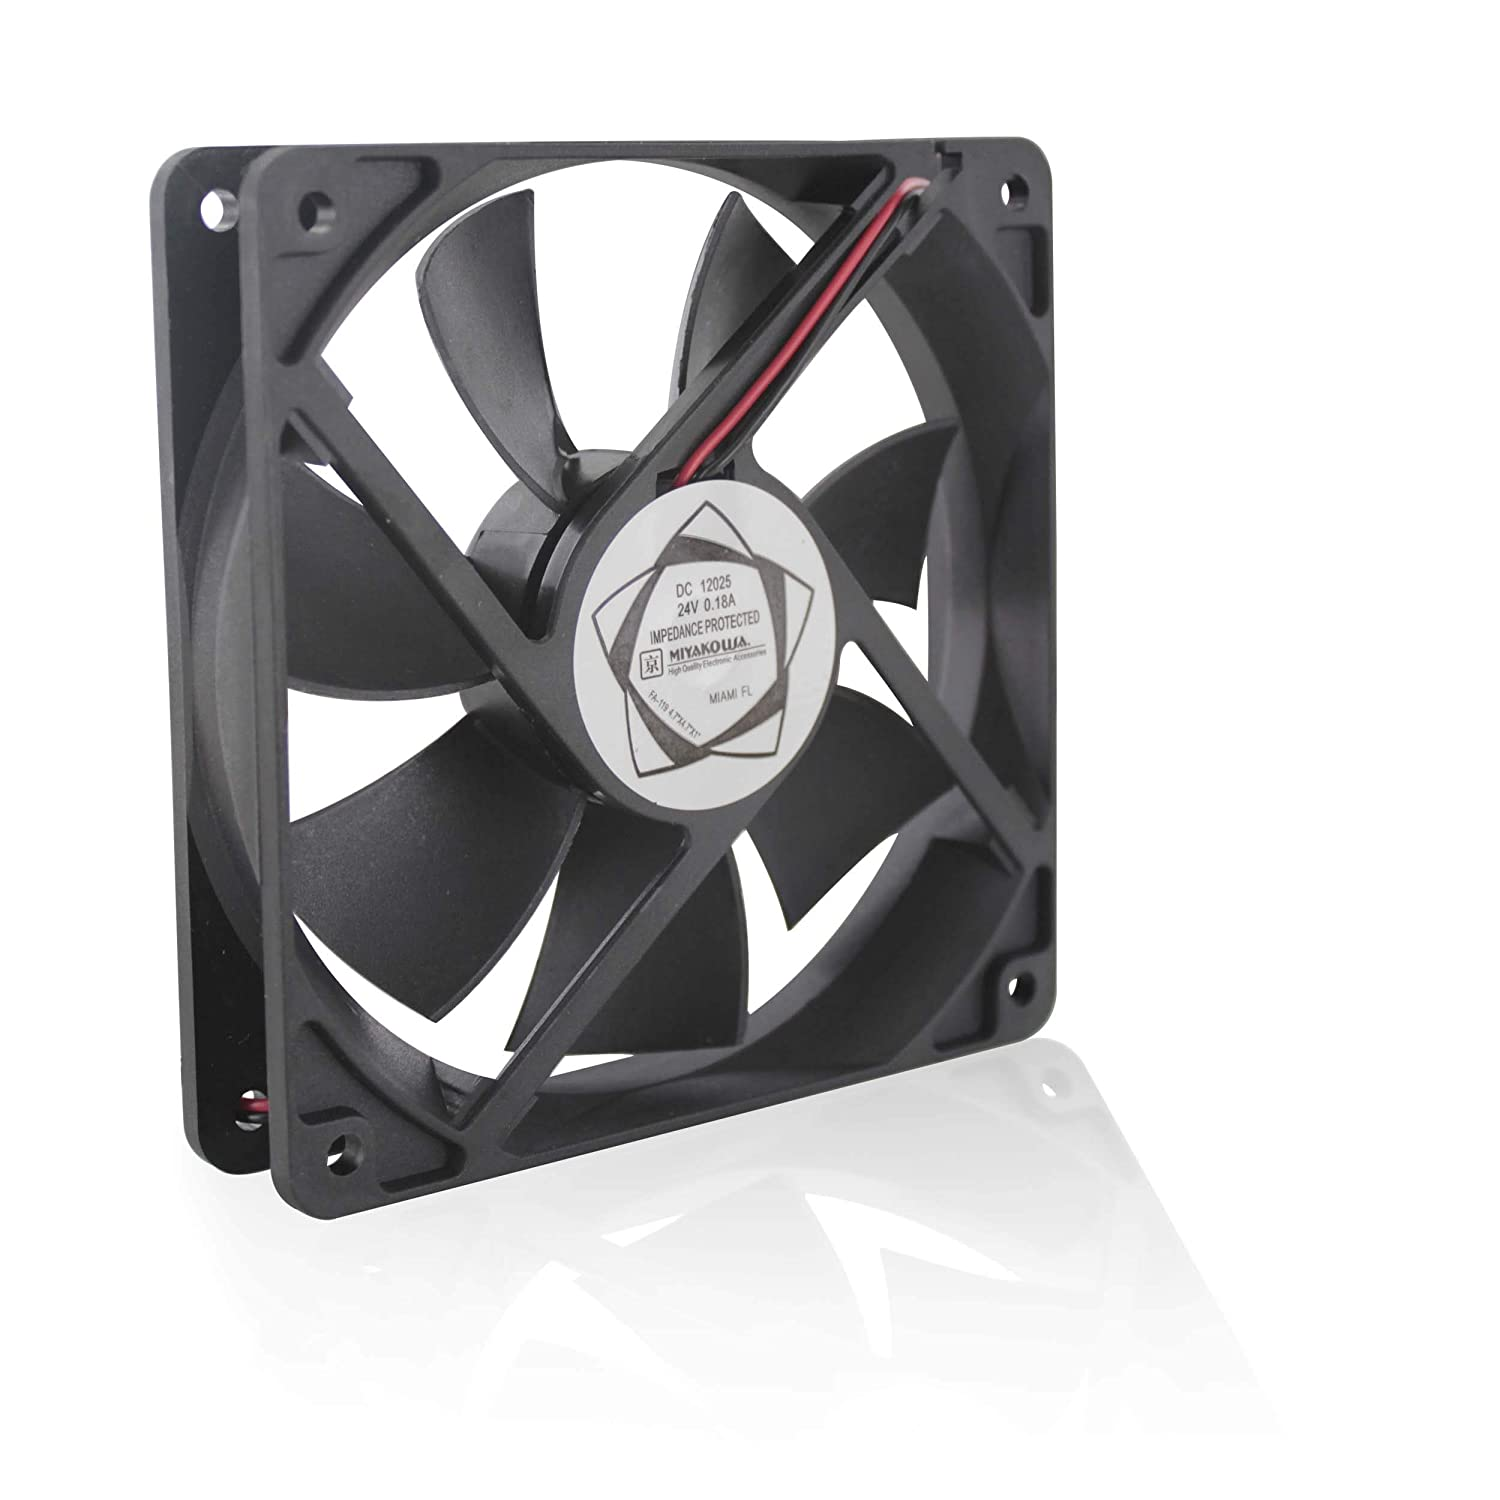 "MIYAKO 12V DC CPU Cooling Fan Super Silent 2200 RPM 7 Blades 4.75"" x 4.75"" x 1"" inches 0.25A Ideal for Computer Cases, 3D Printers and Radiators (FA-114)"